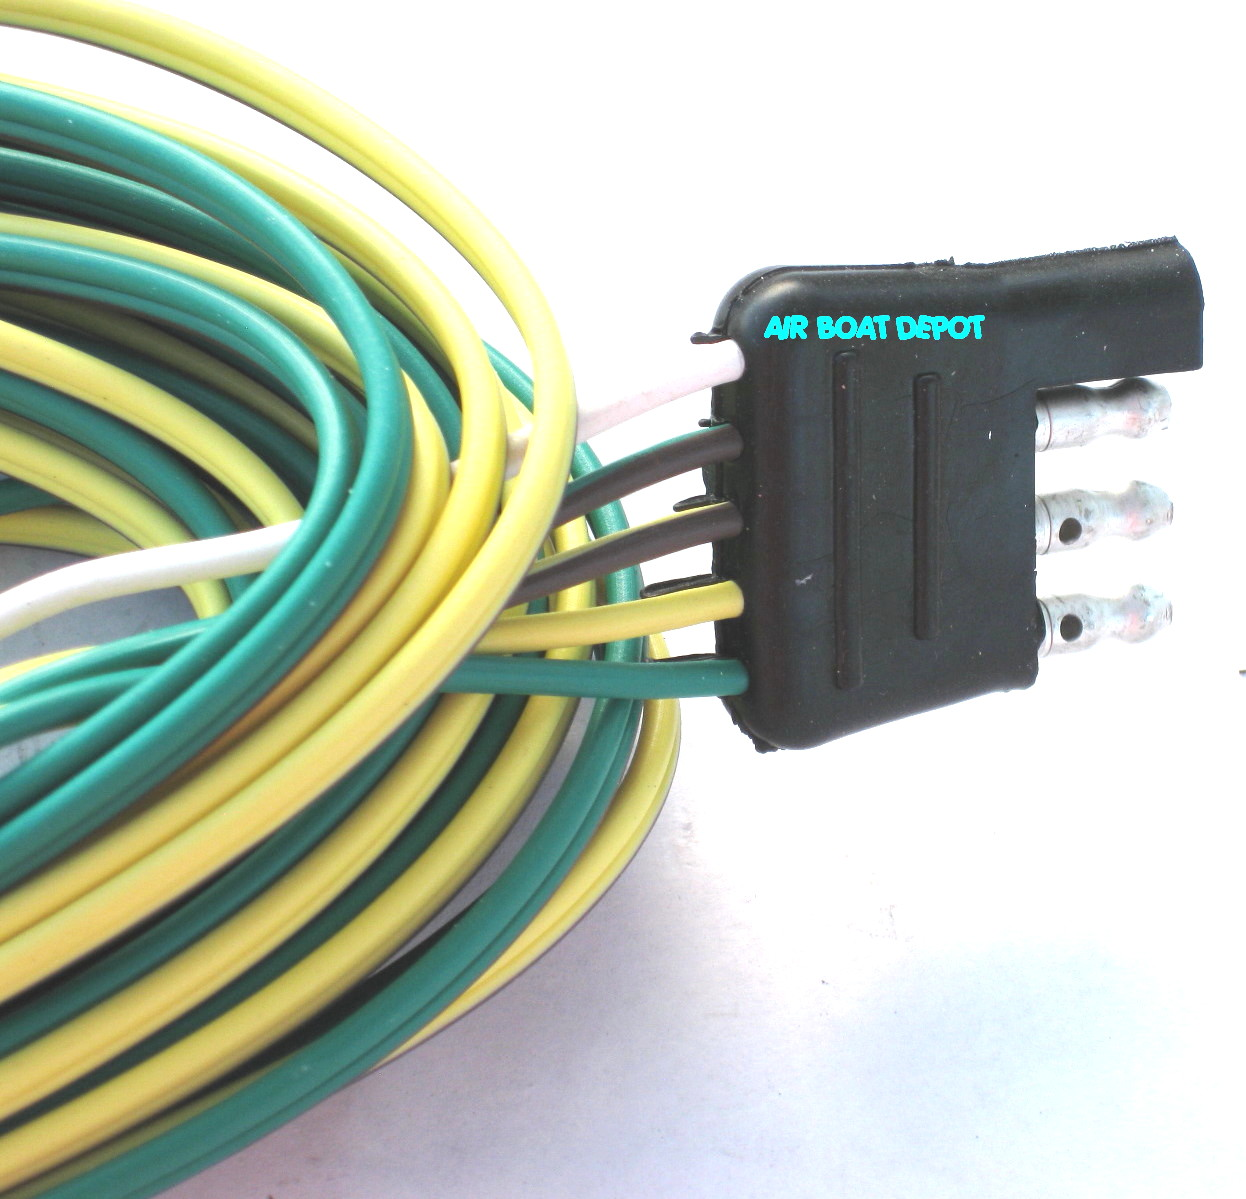 T WB25 WESBAR TRAILER WIRE HARNESS 4 WAY FLAT 25 WISHBONE 25 wesbar� wishbone trailer wiring harness 4 way flat 18 ga, 25 wesbar trailer connector wiring diagram at webbmarketing.co